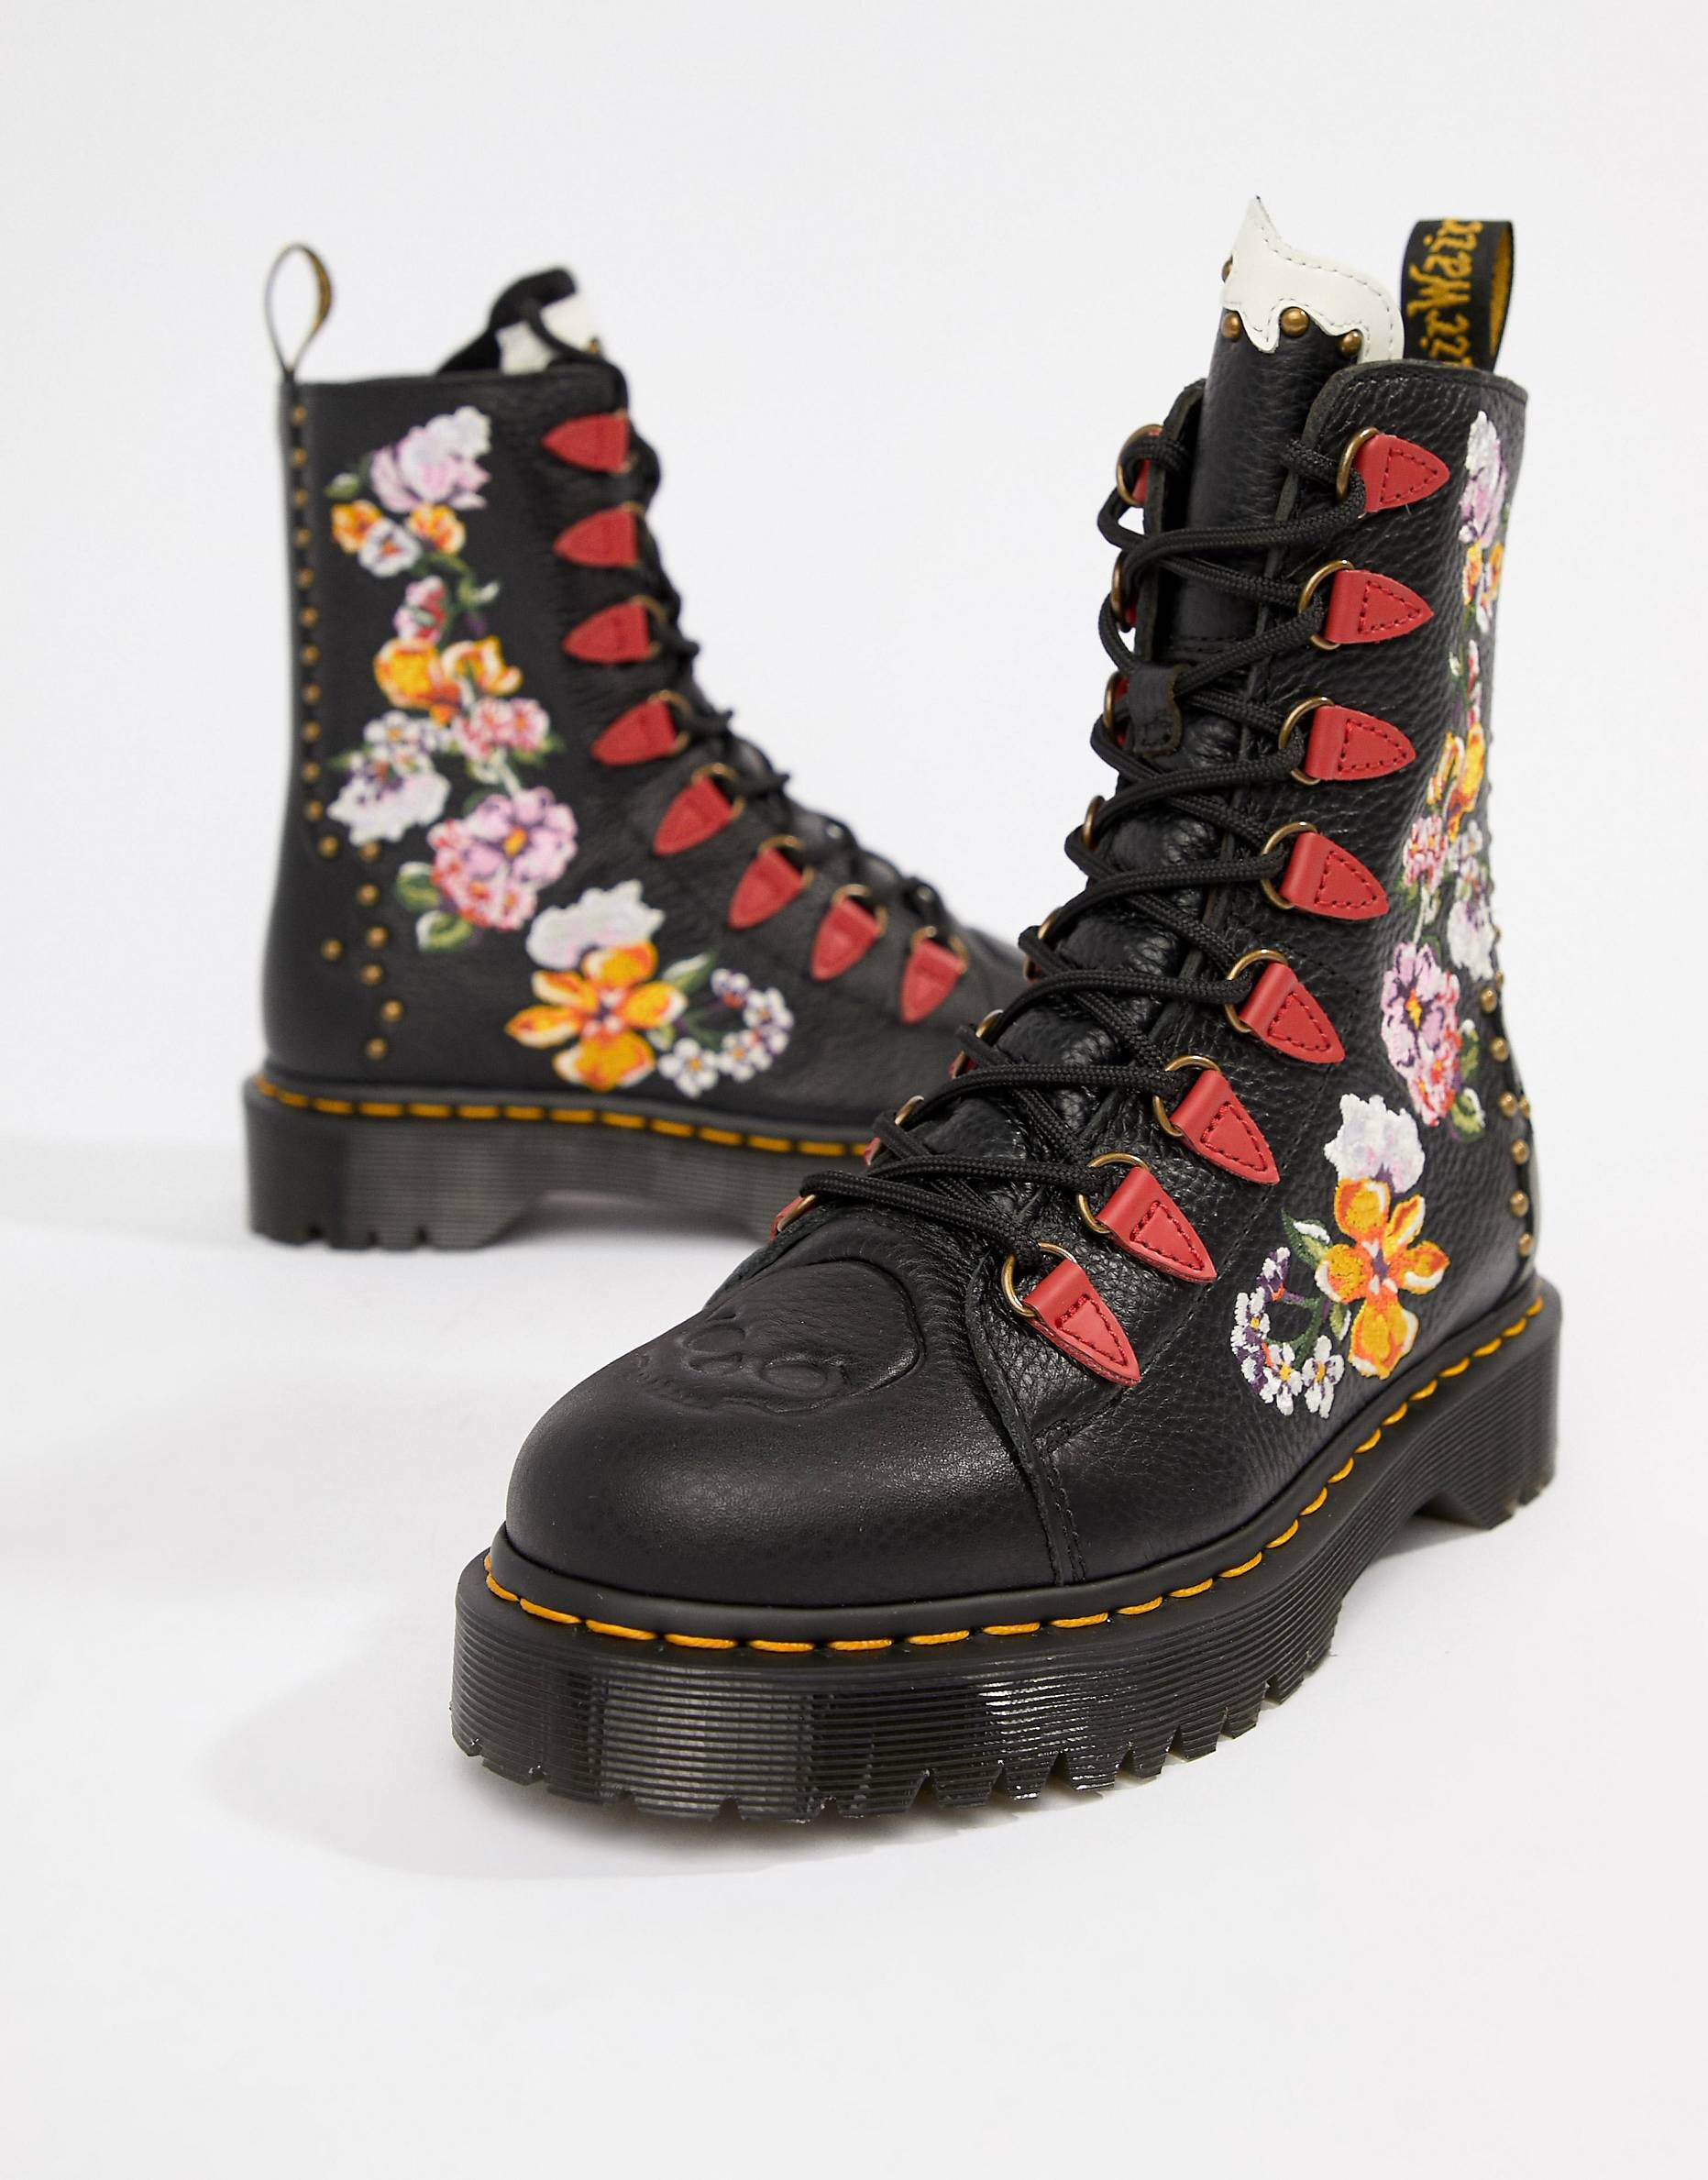 fd9cf30b4ff Dr Martens Nyberg Black Leather Embroidered Flatform Boots ...